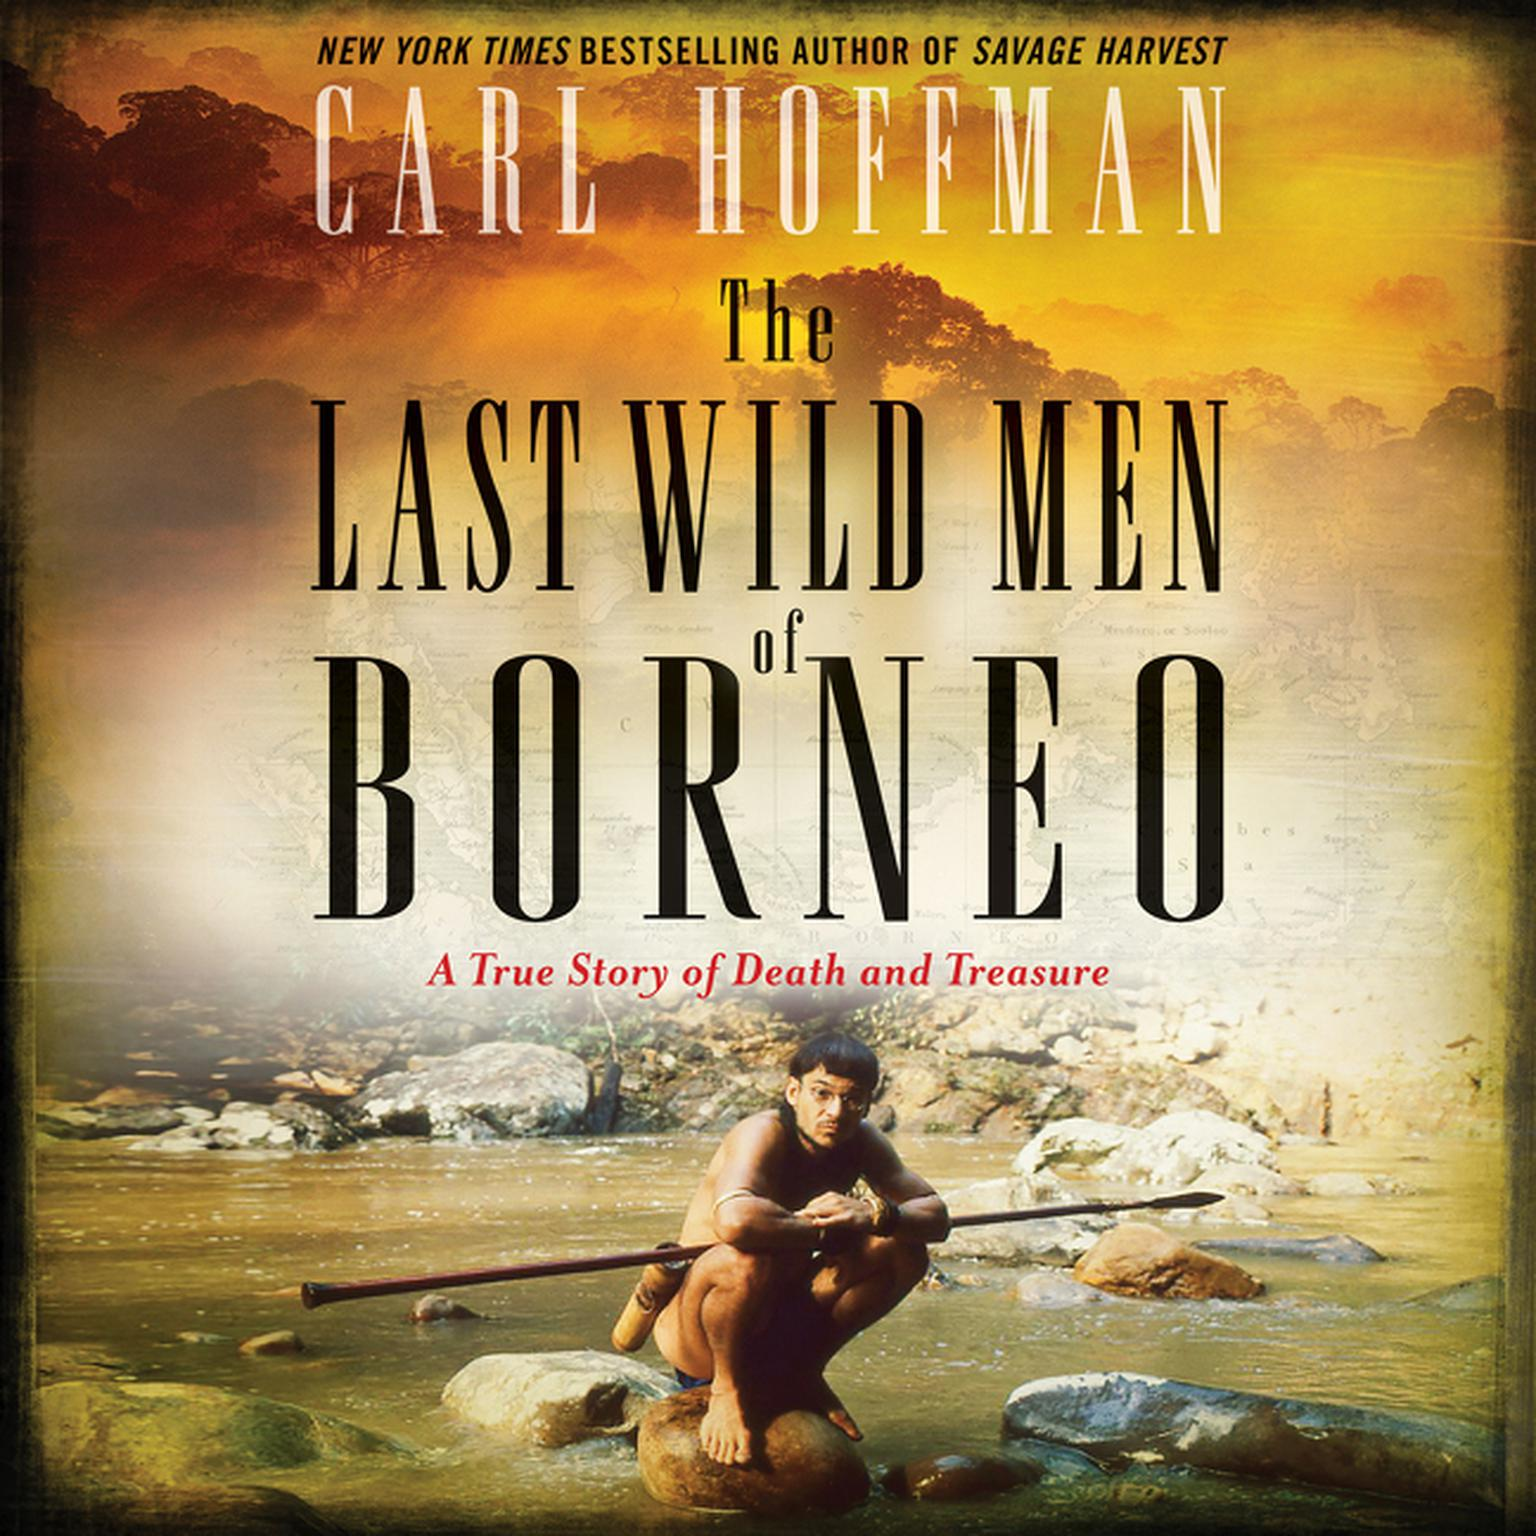 The Last Wild Men of Borneo: A True Story of Death and Treasure Audiobook, by Carl Hoffman